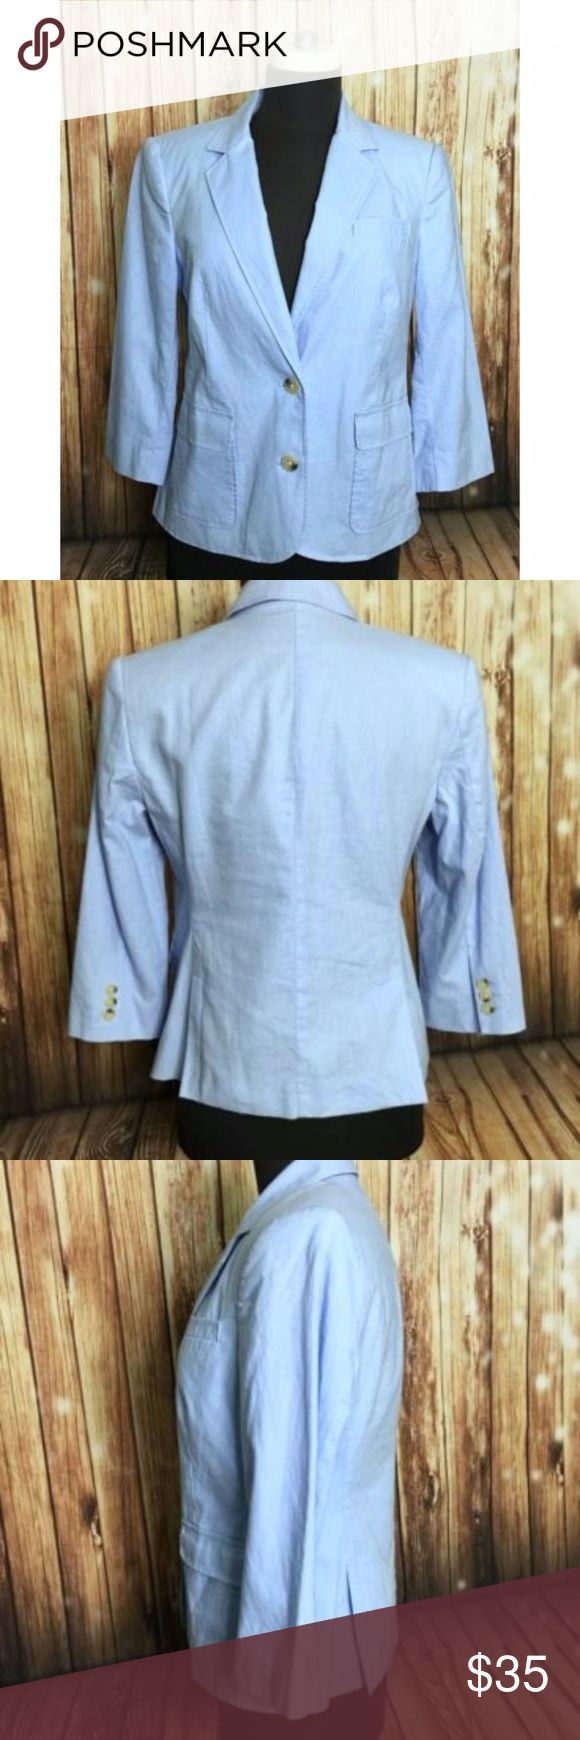 "VICTORIA SECRETS Light Blue Blazer Material: 55% Flax, 45% Cotton Condition: Pre-Owned, Great Condition, No Flaws.  Measurements (laying Flat)     *Measurements are approximate and for reference only*  Long: 24"" Sleeve:  17"" long,  6"" wide Armpit to Armpit: 18"" Waist: 16""  Please note that slight color difference should be acceptable due to the light and screen.  BIN3-090 Victoria's Secret Jackets & Coats Blazers"